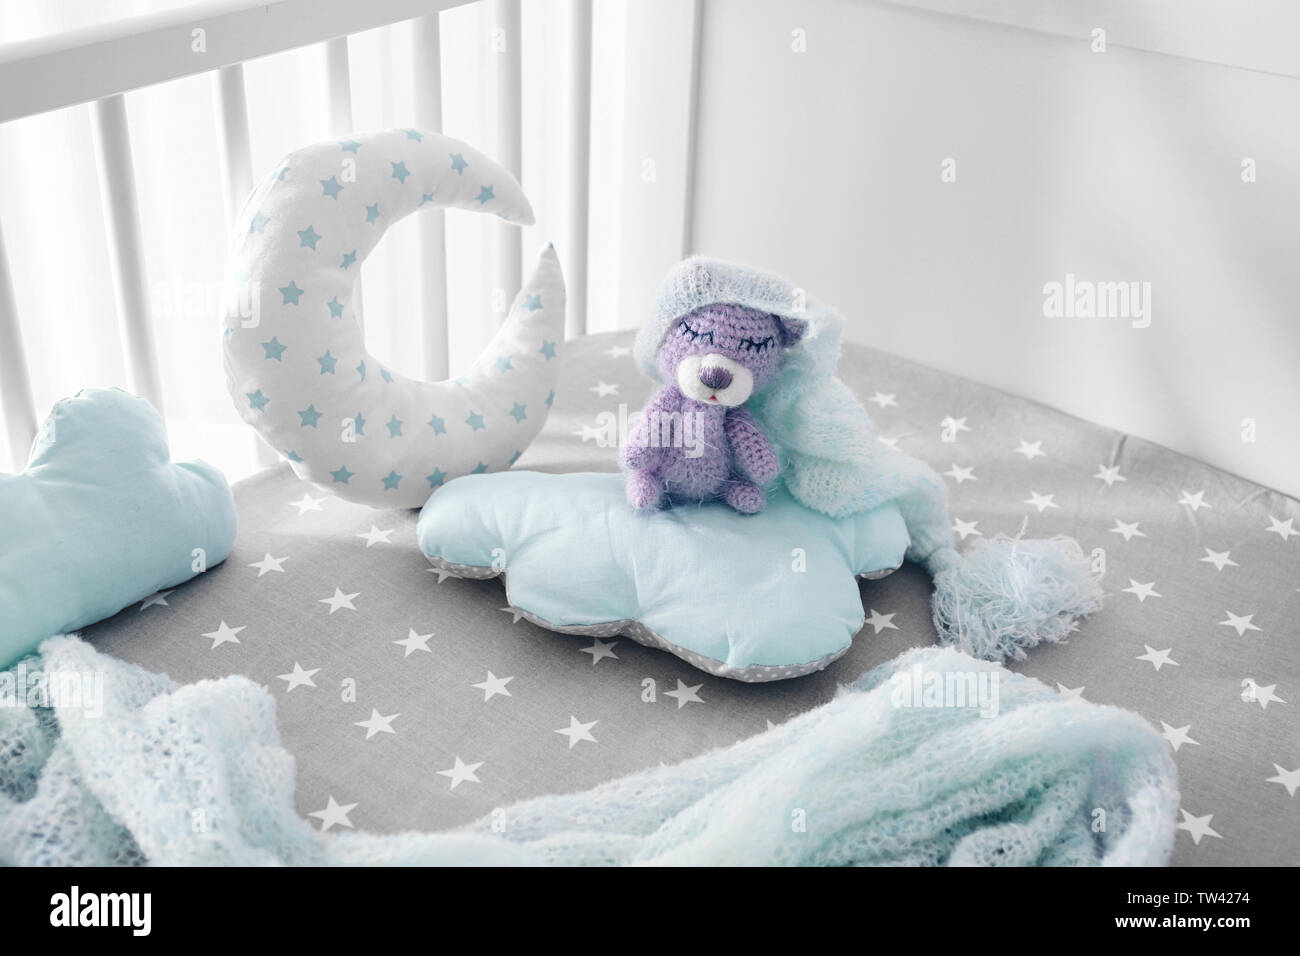 Adorable Handmade Crochet Bear Toy With Baby Clothes And Pillows In Crib Stock Photo Alamy